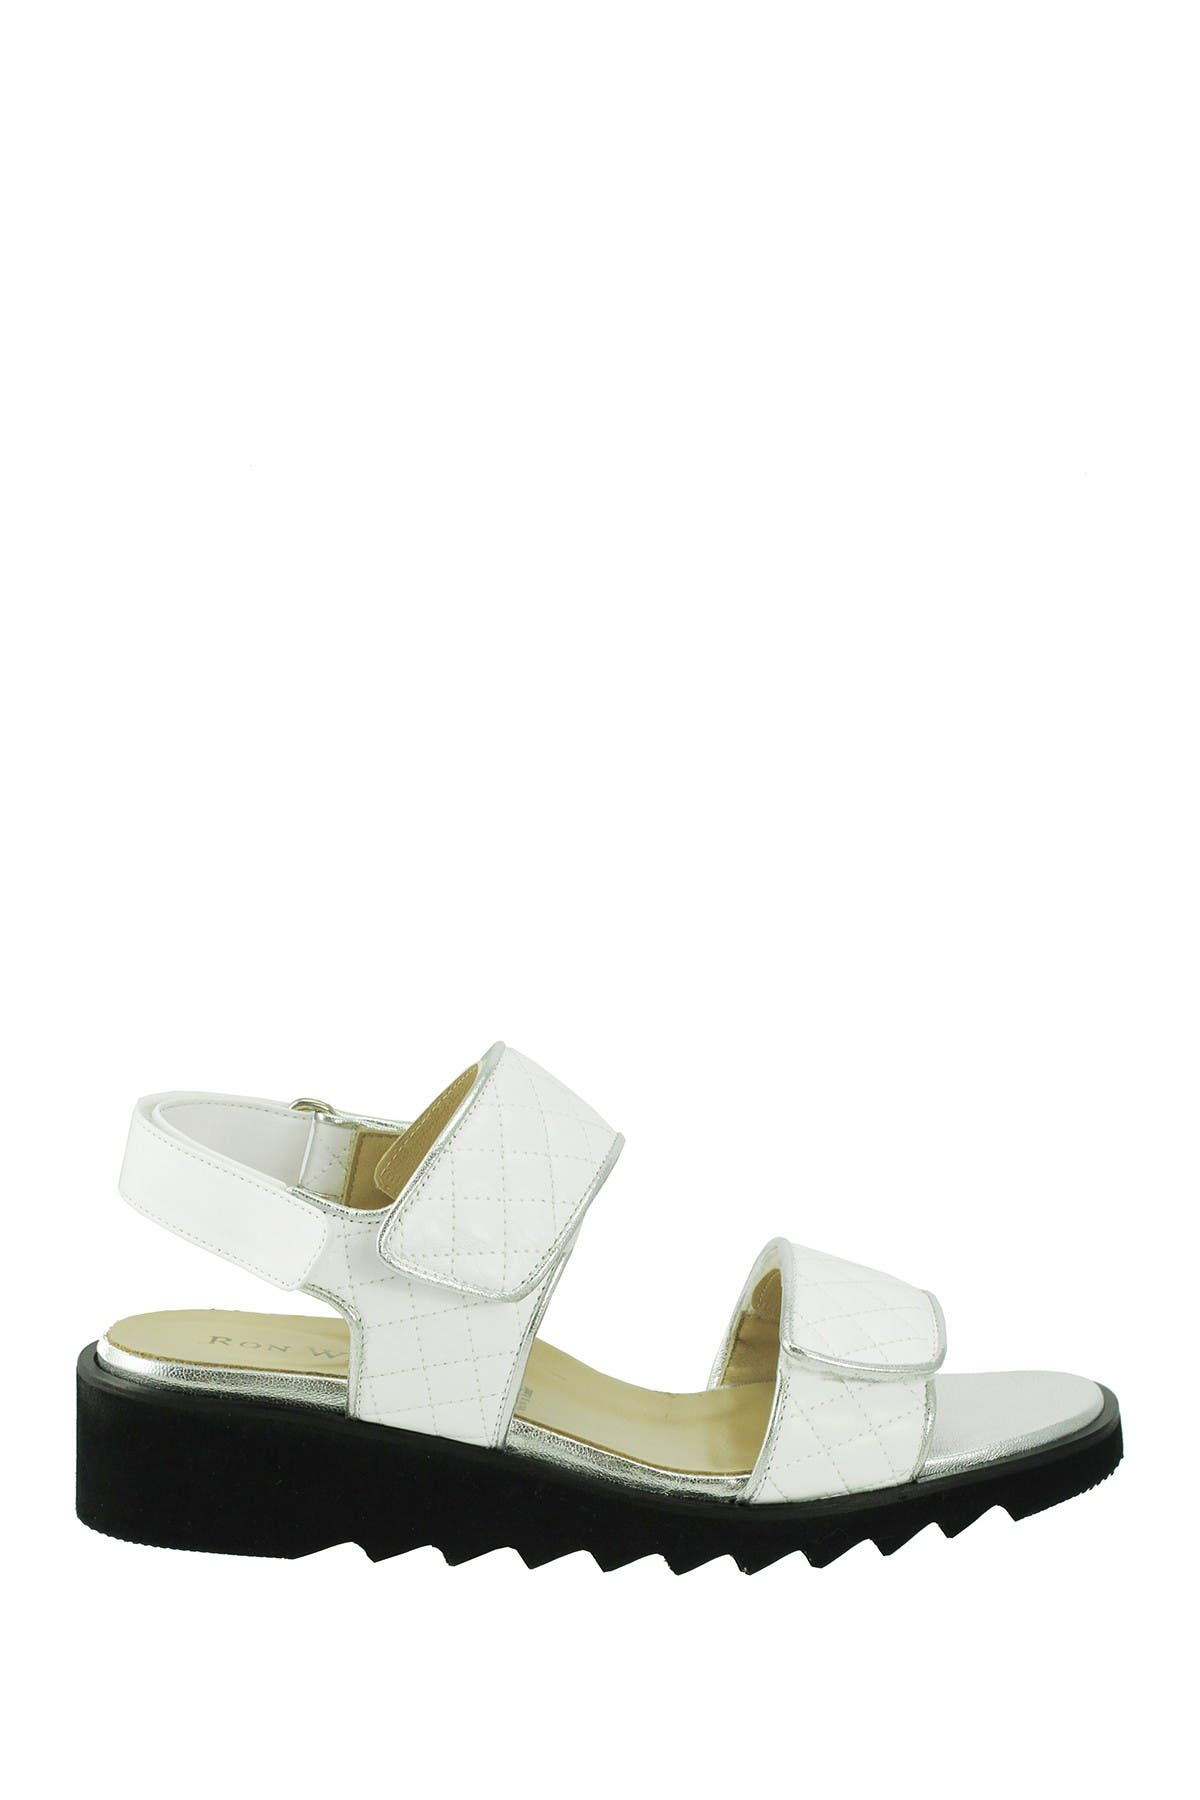 Image of RON WHITE Adrena Quilted Slingback Sandal